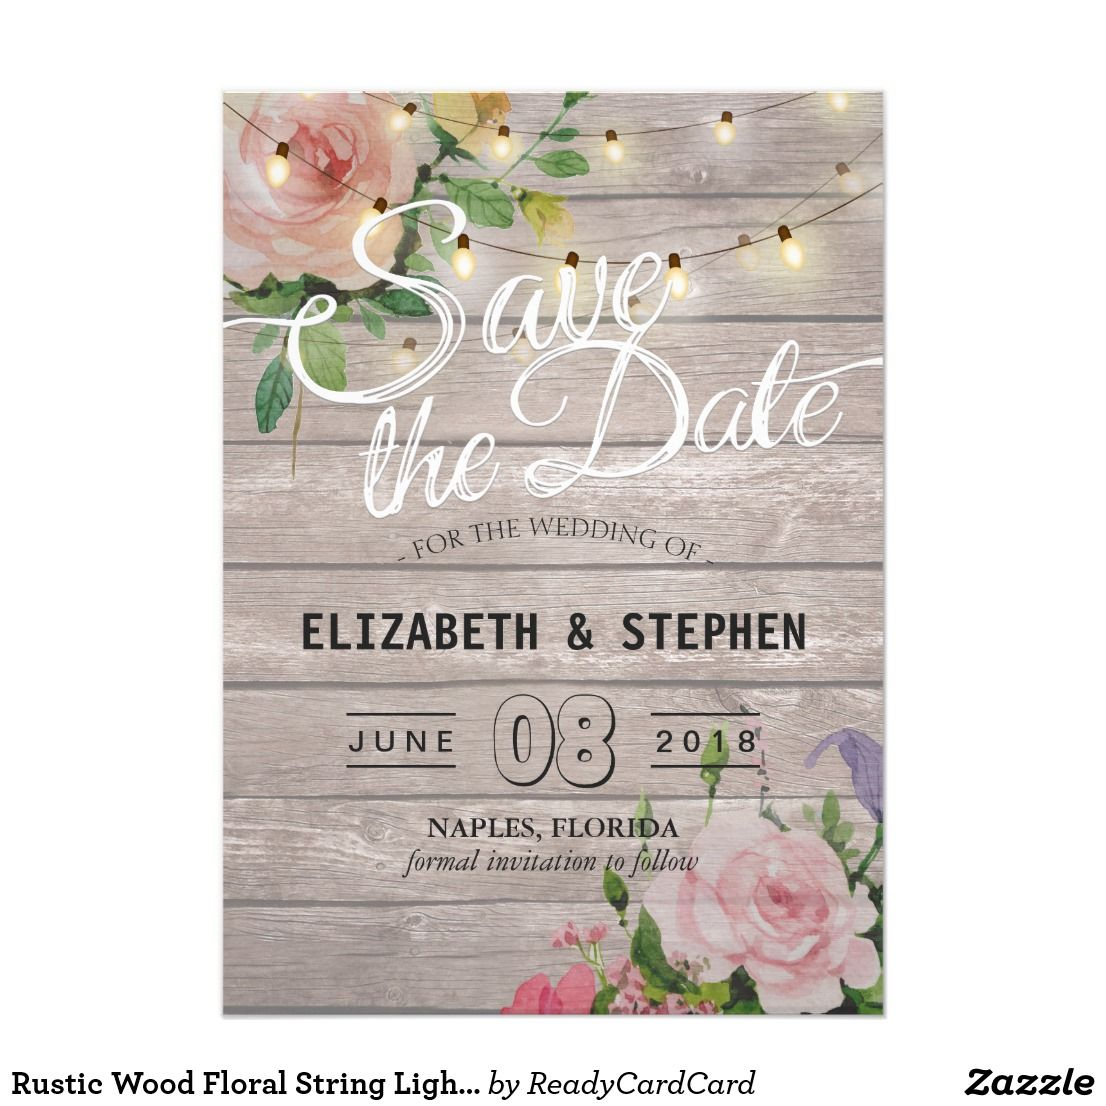 rustic wood floral string lights wedding save date card wedding save the date card templates vintage watercolor floral and elegant string lights on rustic